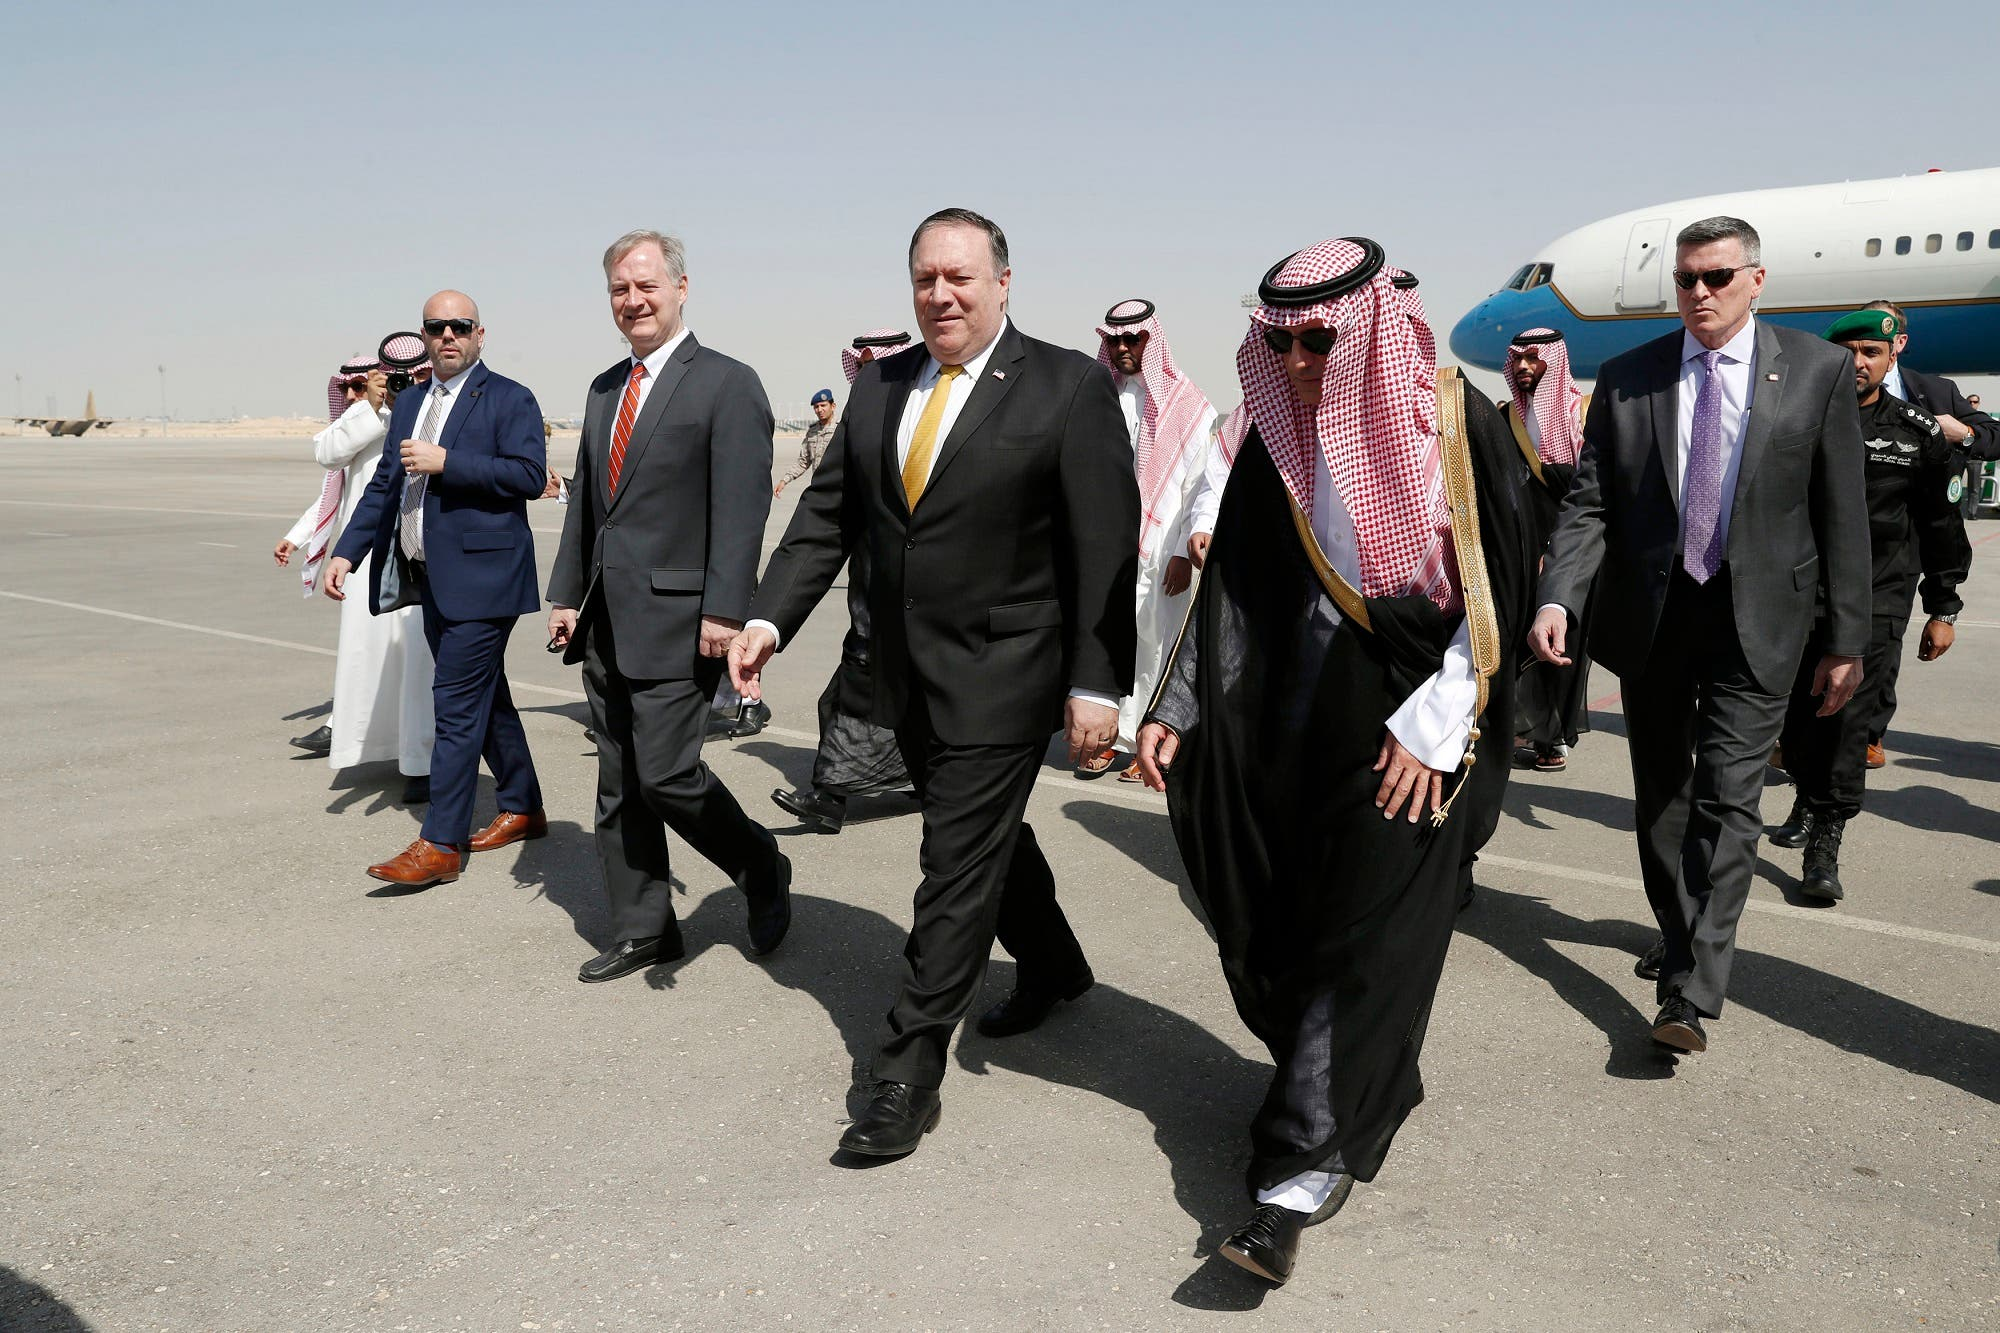 U.S. Secretary of State Mike Pompeo, second right in front, walks with Saudi Foreign Minister Adel al-Jubeir after arriving in Riyadh, Saudi Arabia, Tuesday, Oct. 16, 2018. (AP)